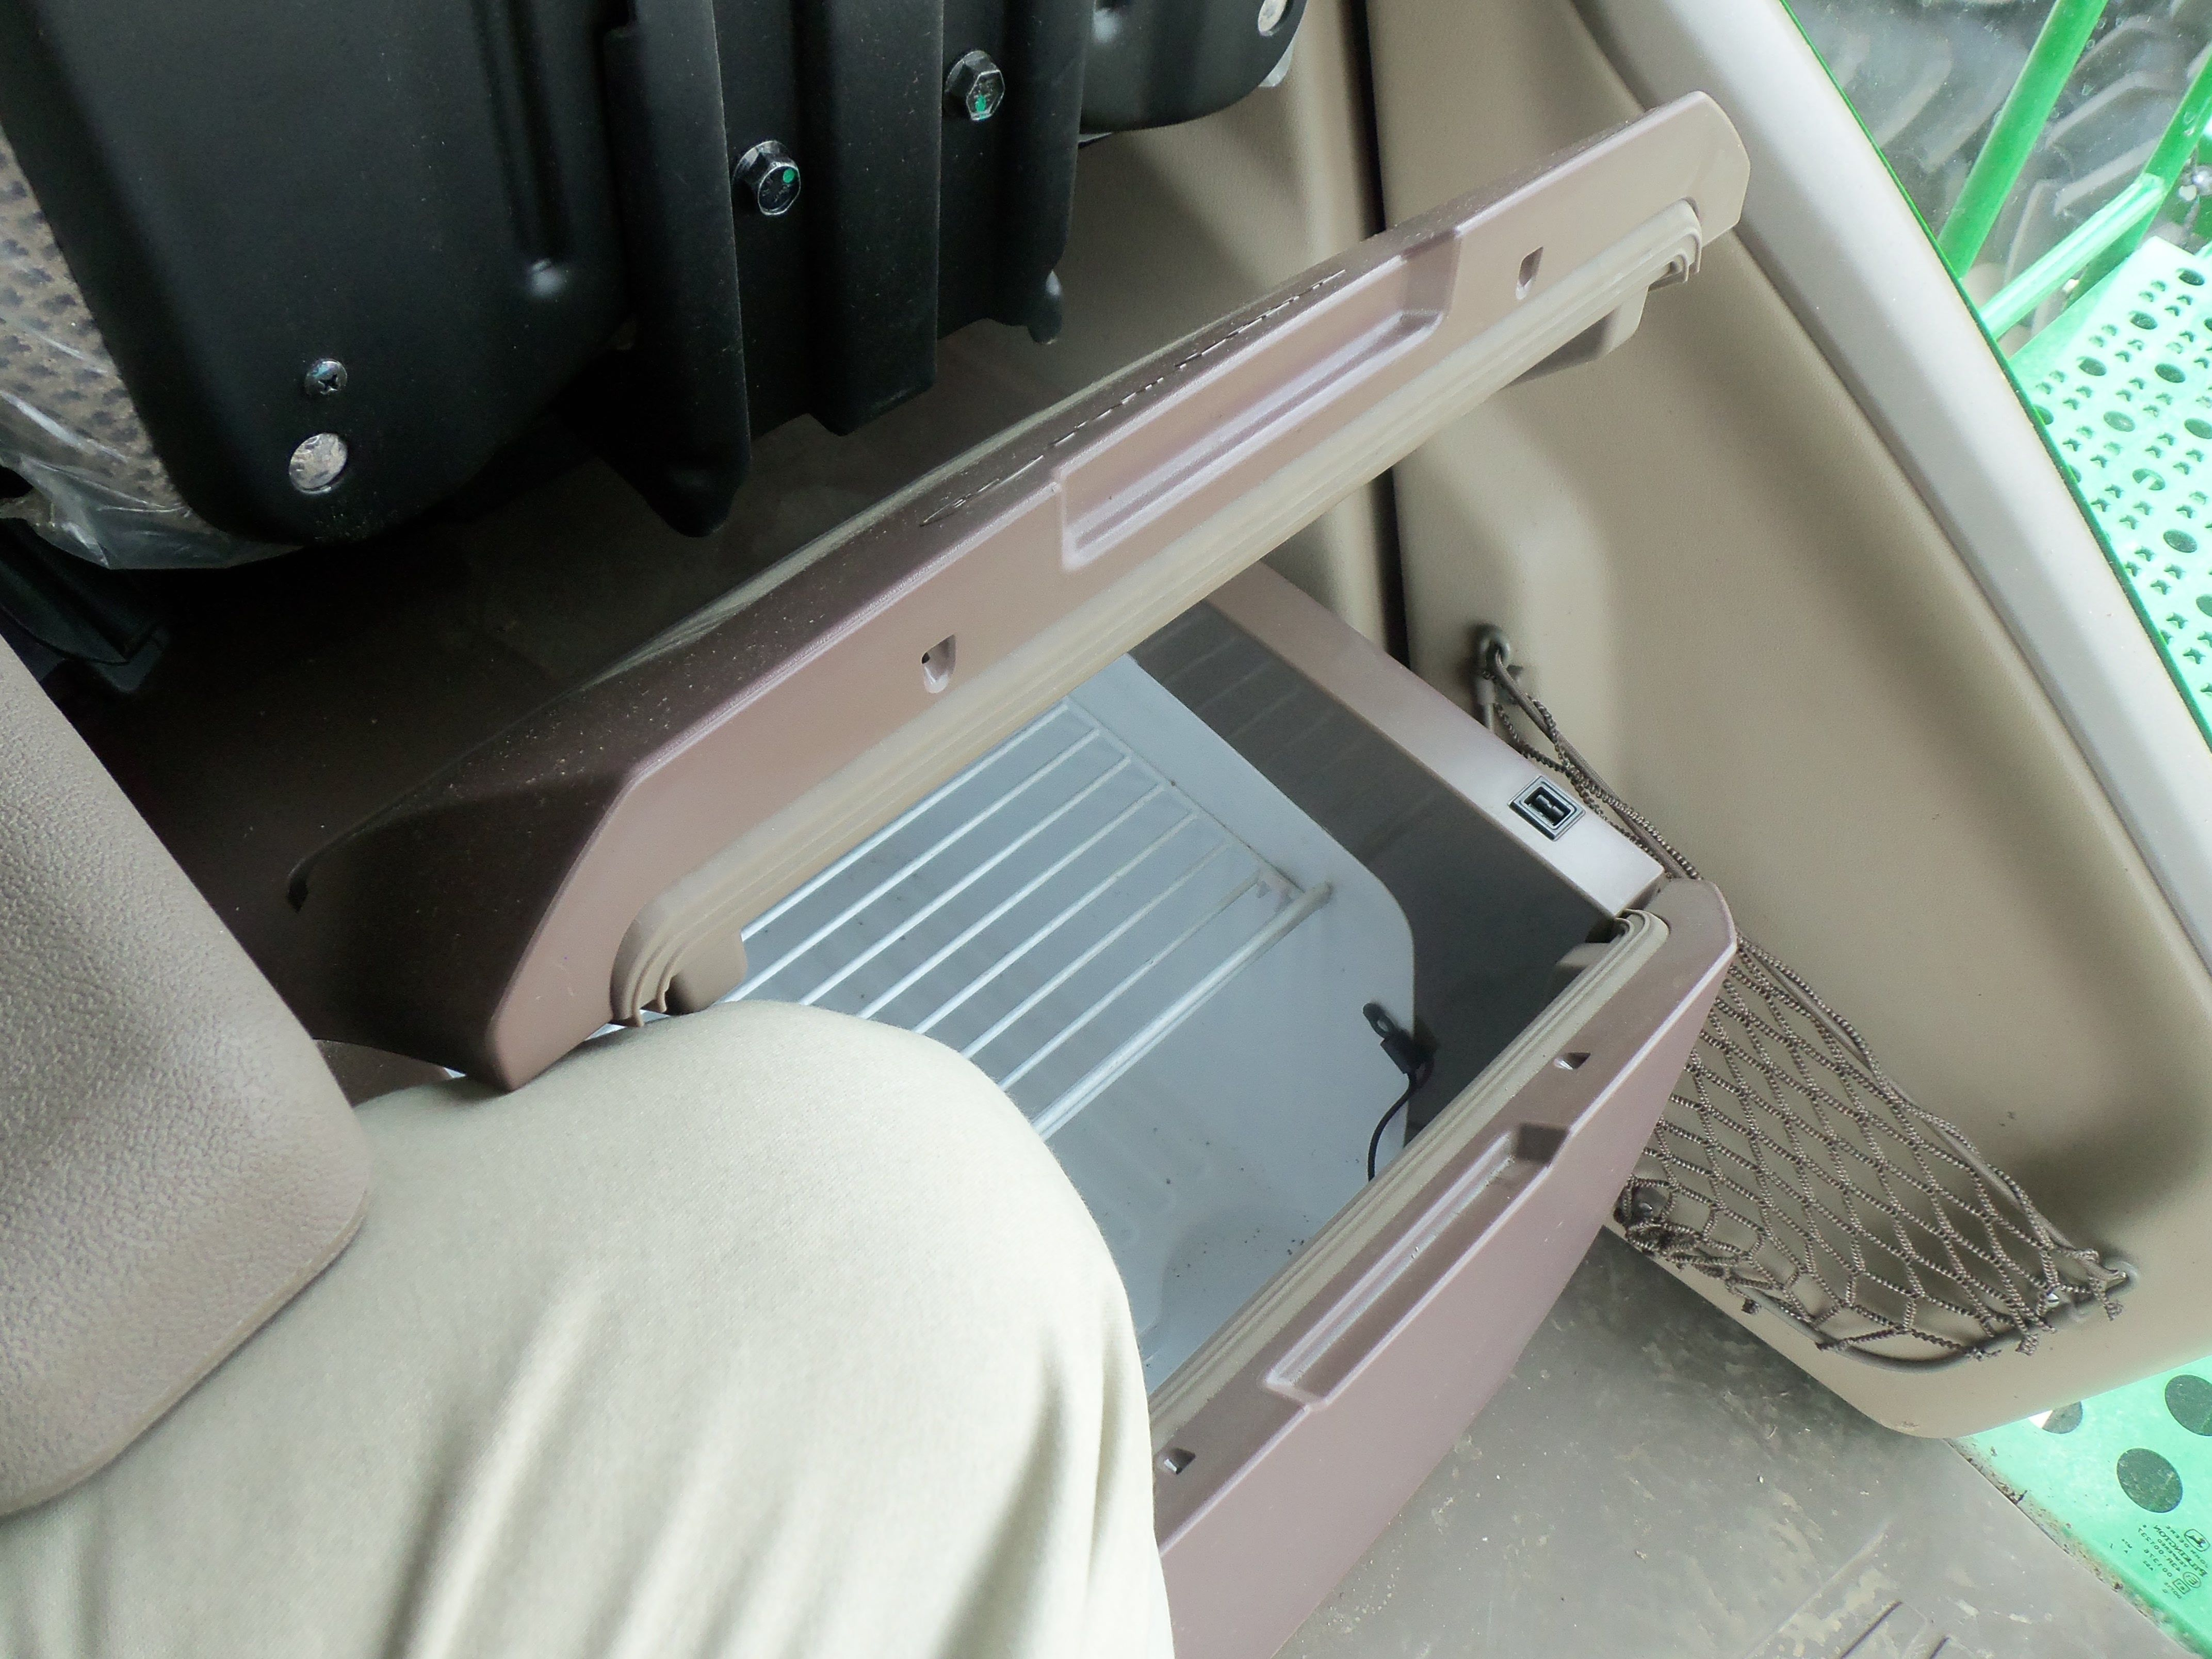 INside thie JOhn Deere S680 will find this refrigerator disguised as a additional seat